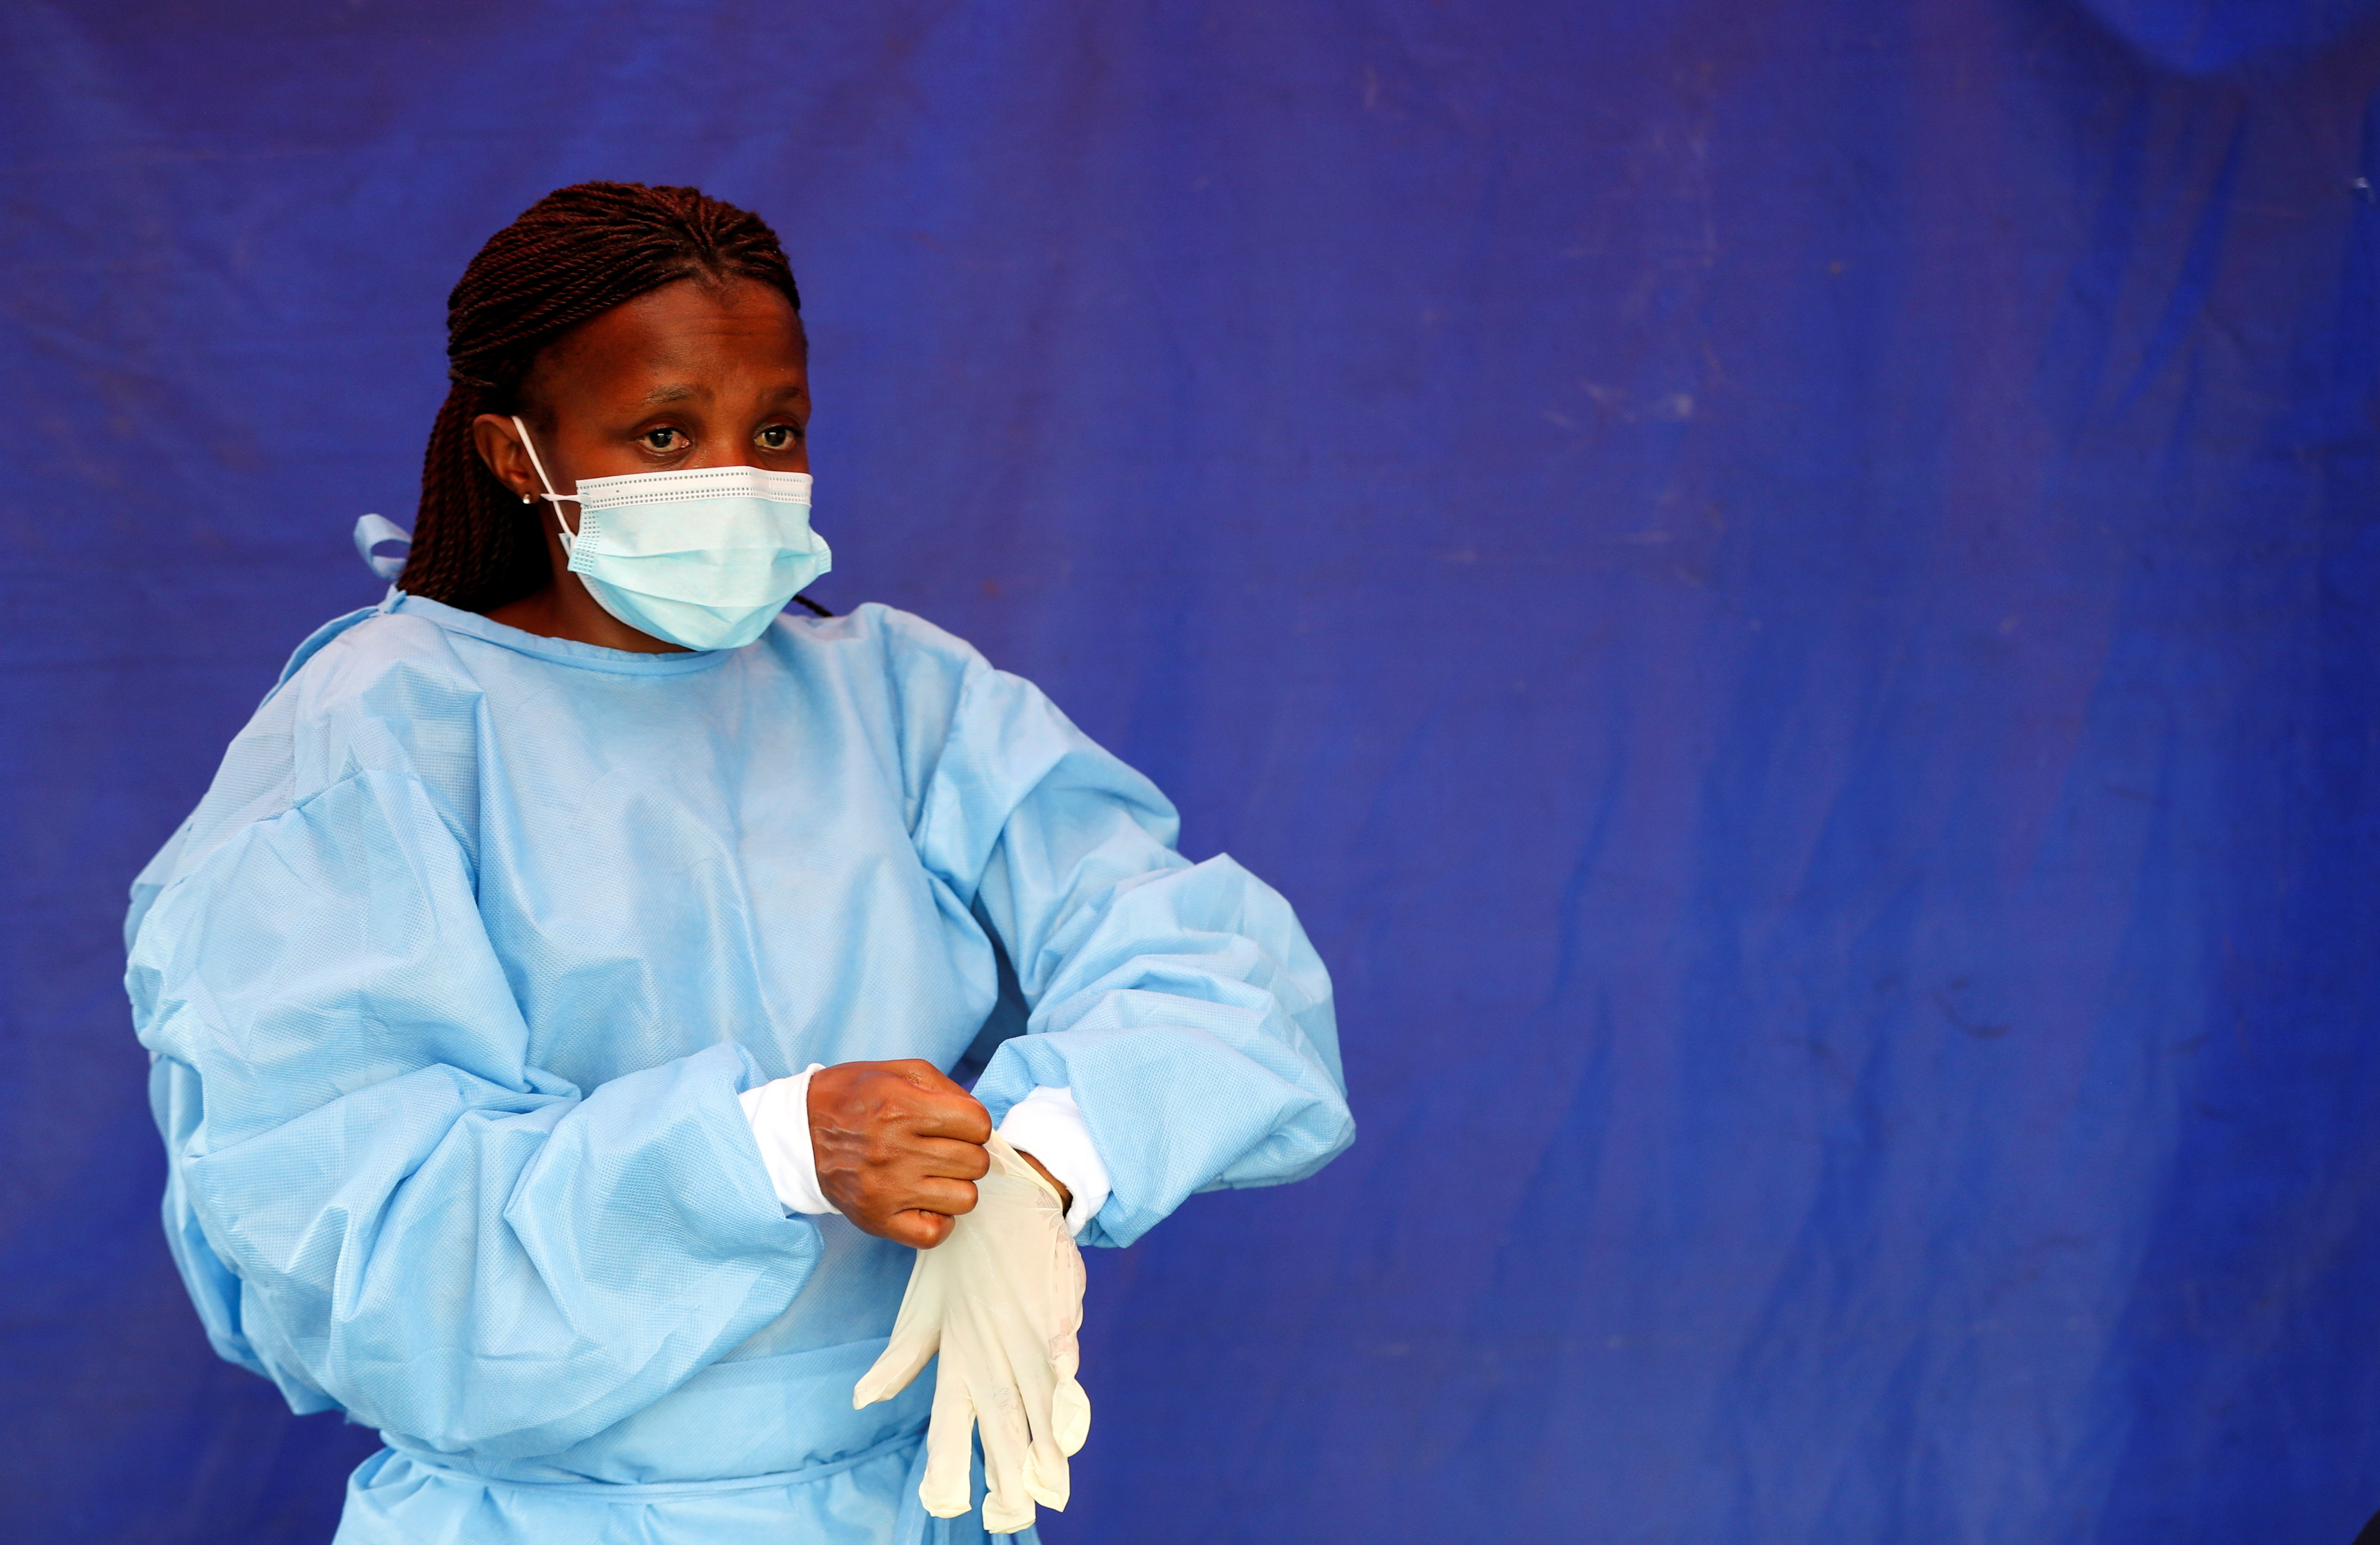 A health worker wears protective clothing as she prepares for testing travellers for the coronavirus disease (COVID-19) amid a nationwide COVID-19 lockdown, at the Grasmere Toll Plaza, in Lenasia, South Africa, January 14, 2021. REUTERS/Siphiwe Sibeko - RC2R7L9ZSRWX